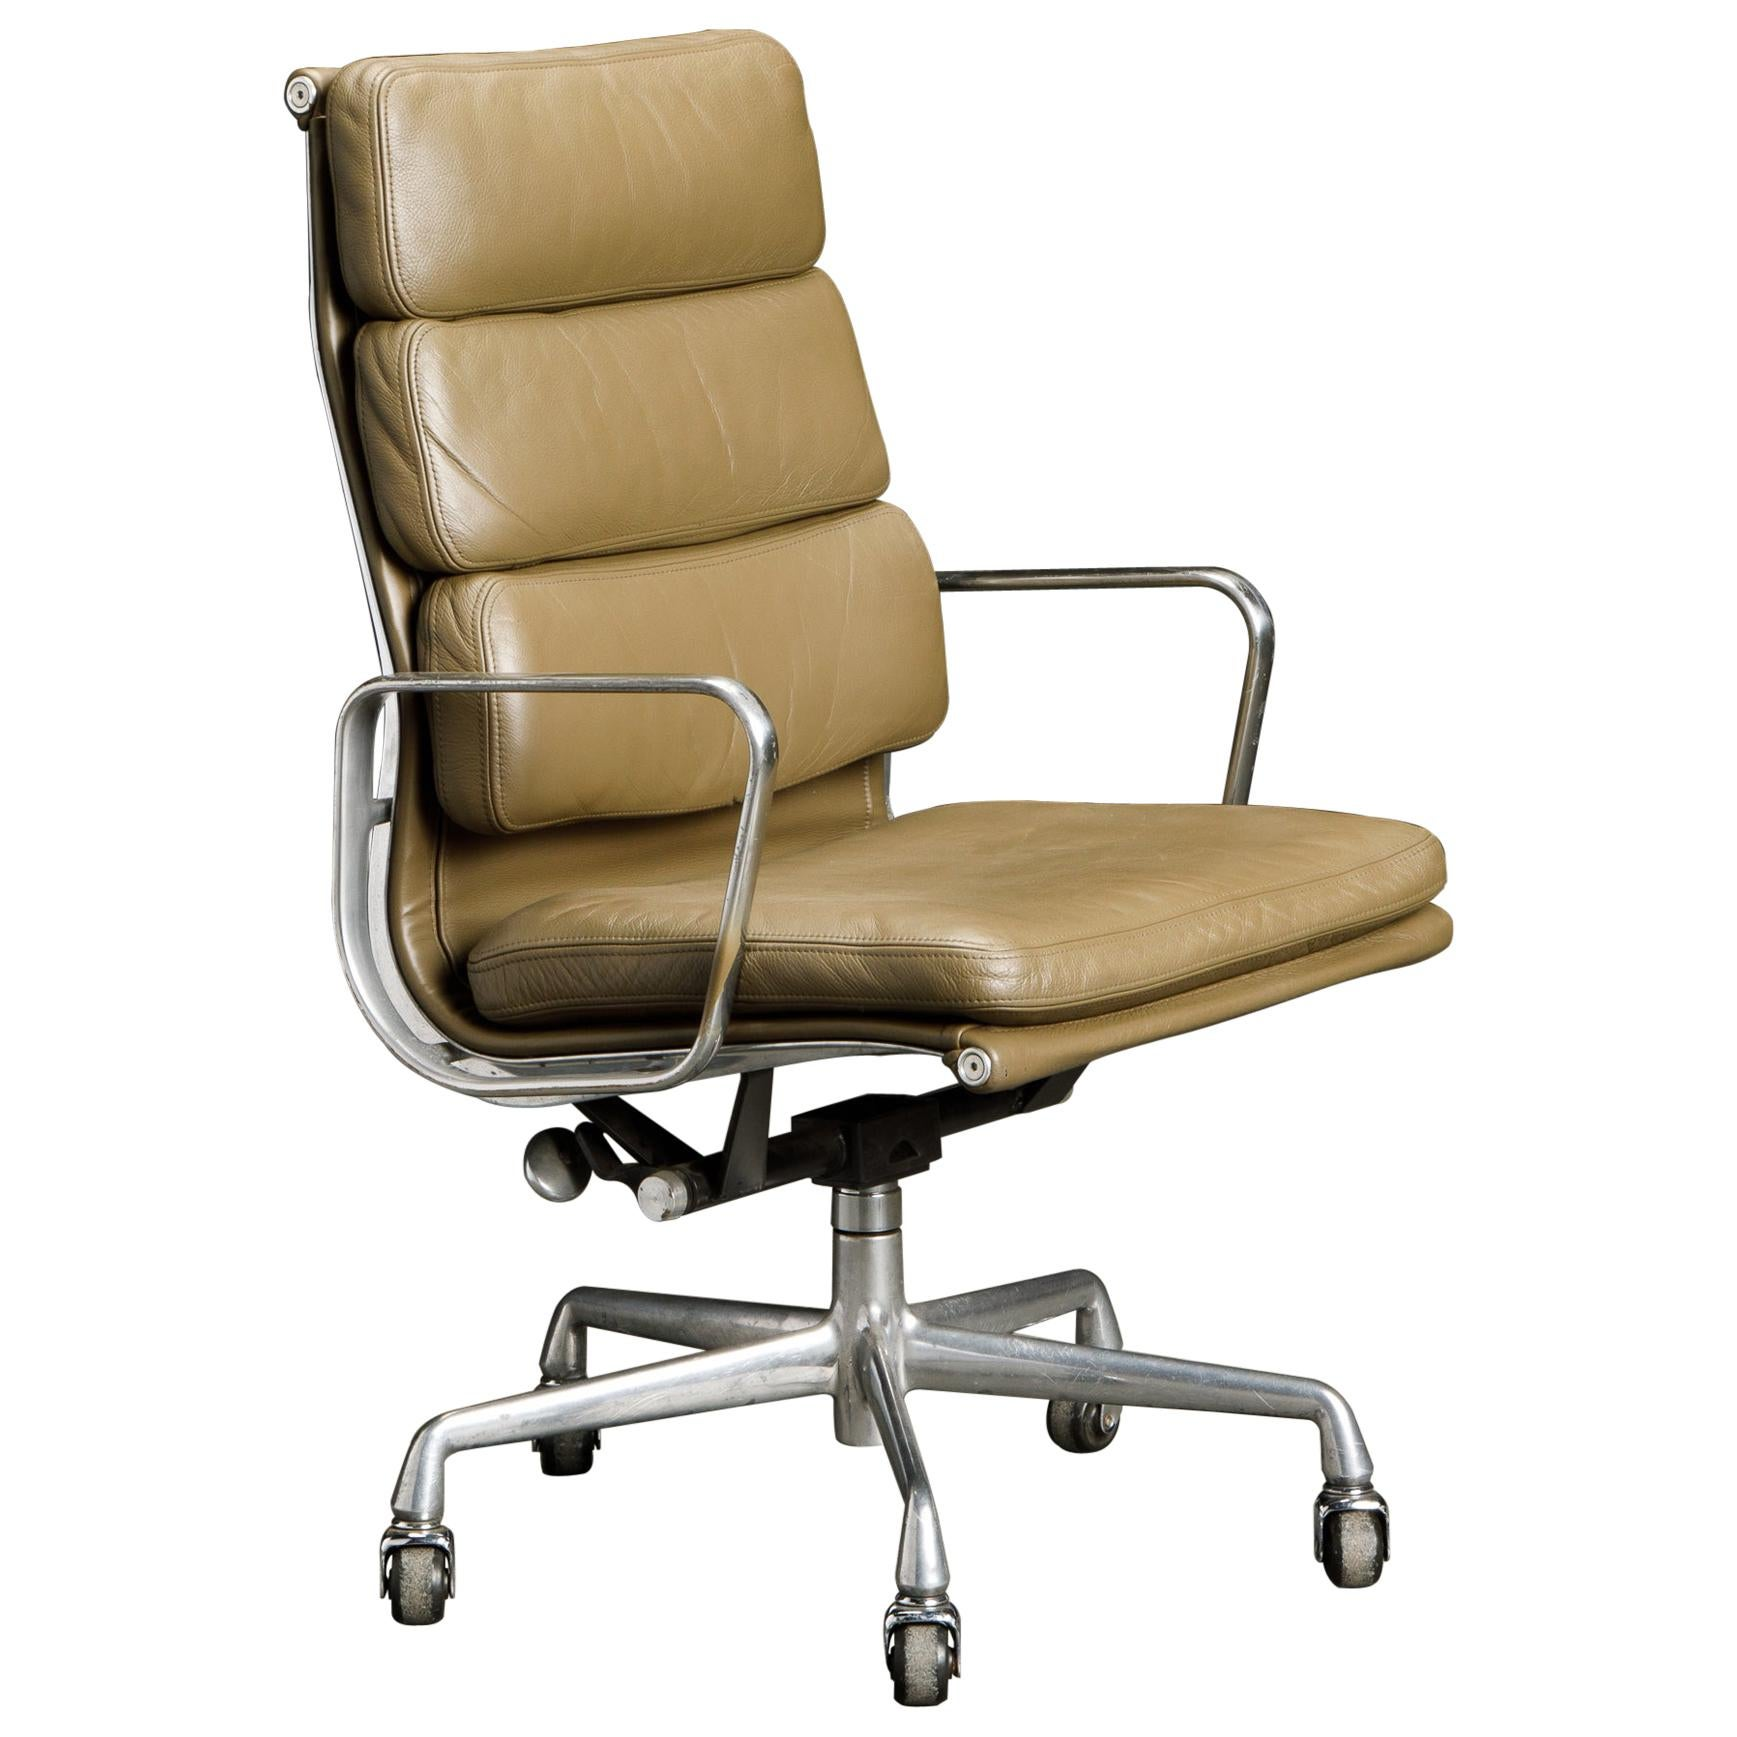 Charles Eames for Herman Miller Leather 'Soft Pad' Executive Desk Chair, Signed